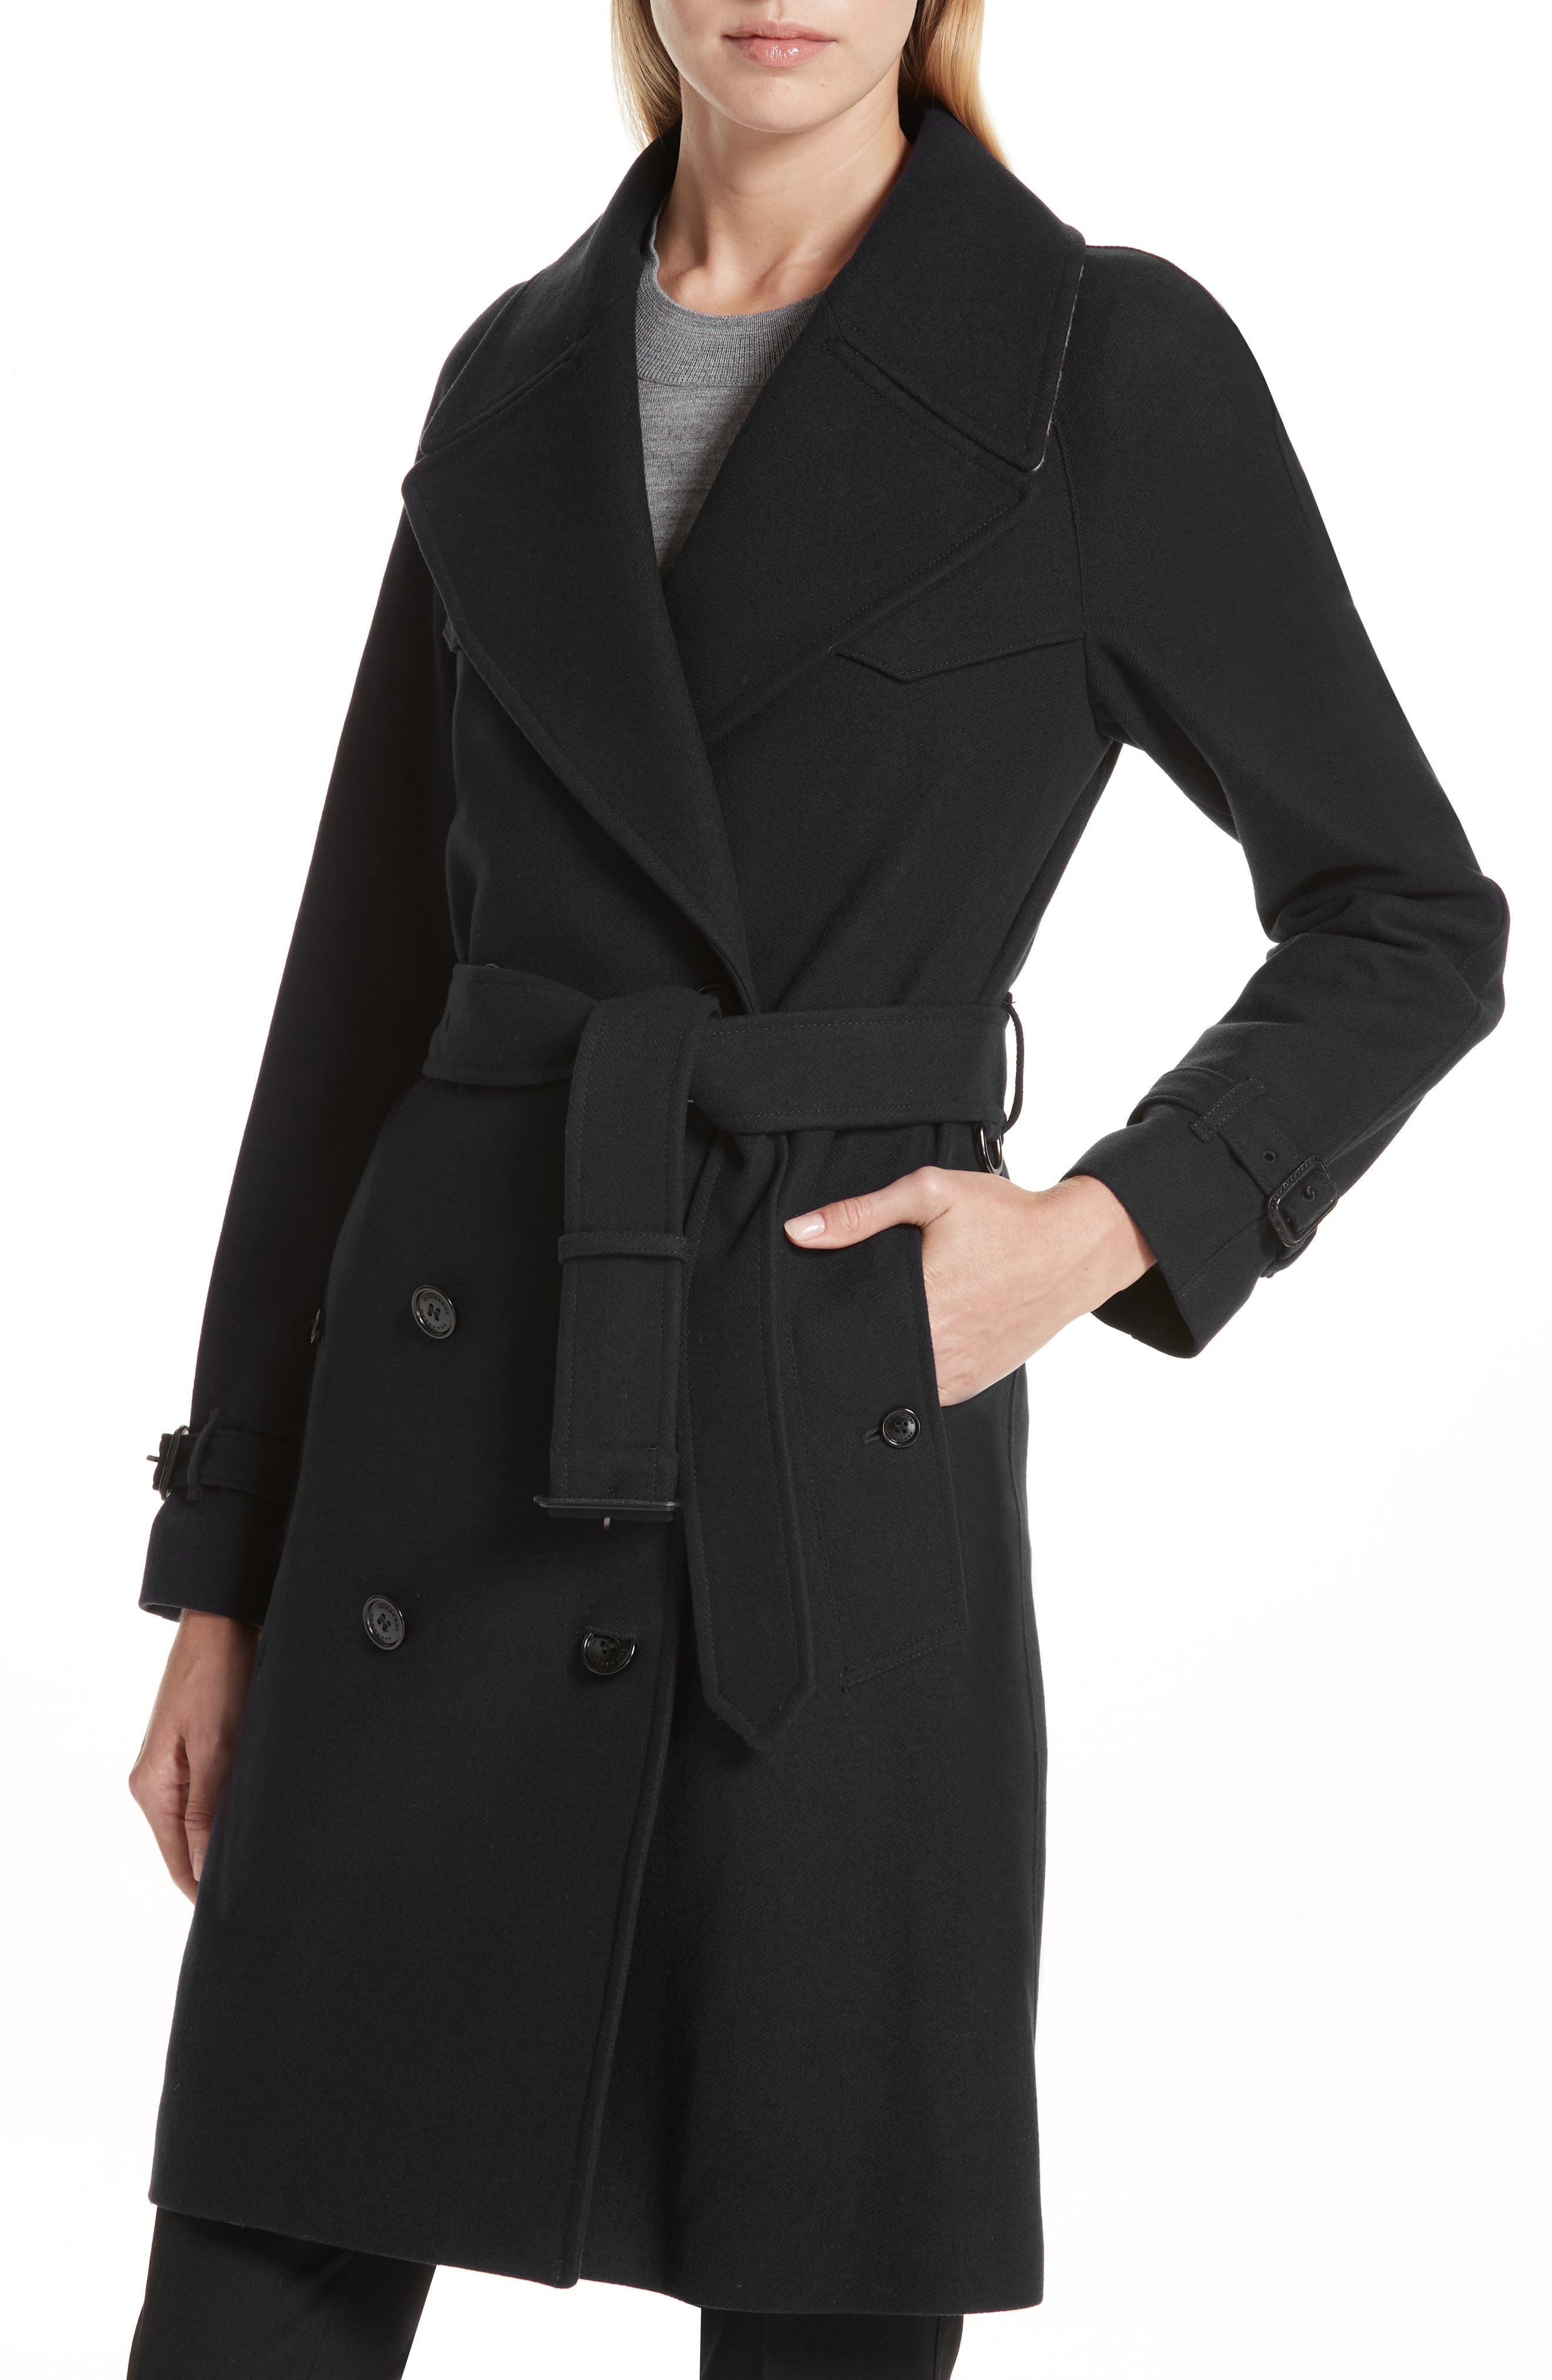 BURBERRY,                             Cranston Wool Blend Trench Coat,                             Alternate thumbnail 4, color,                             001